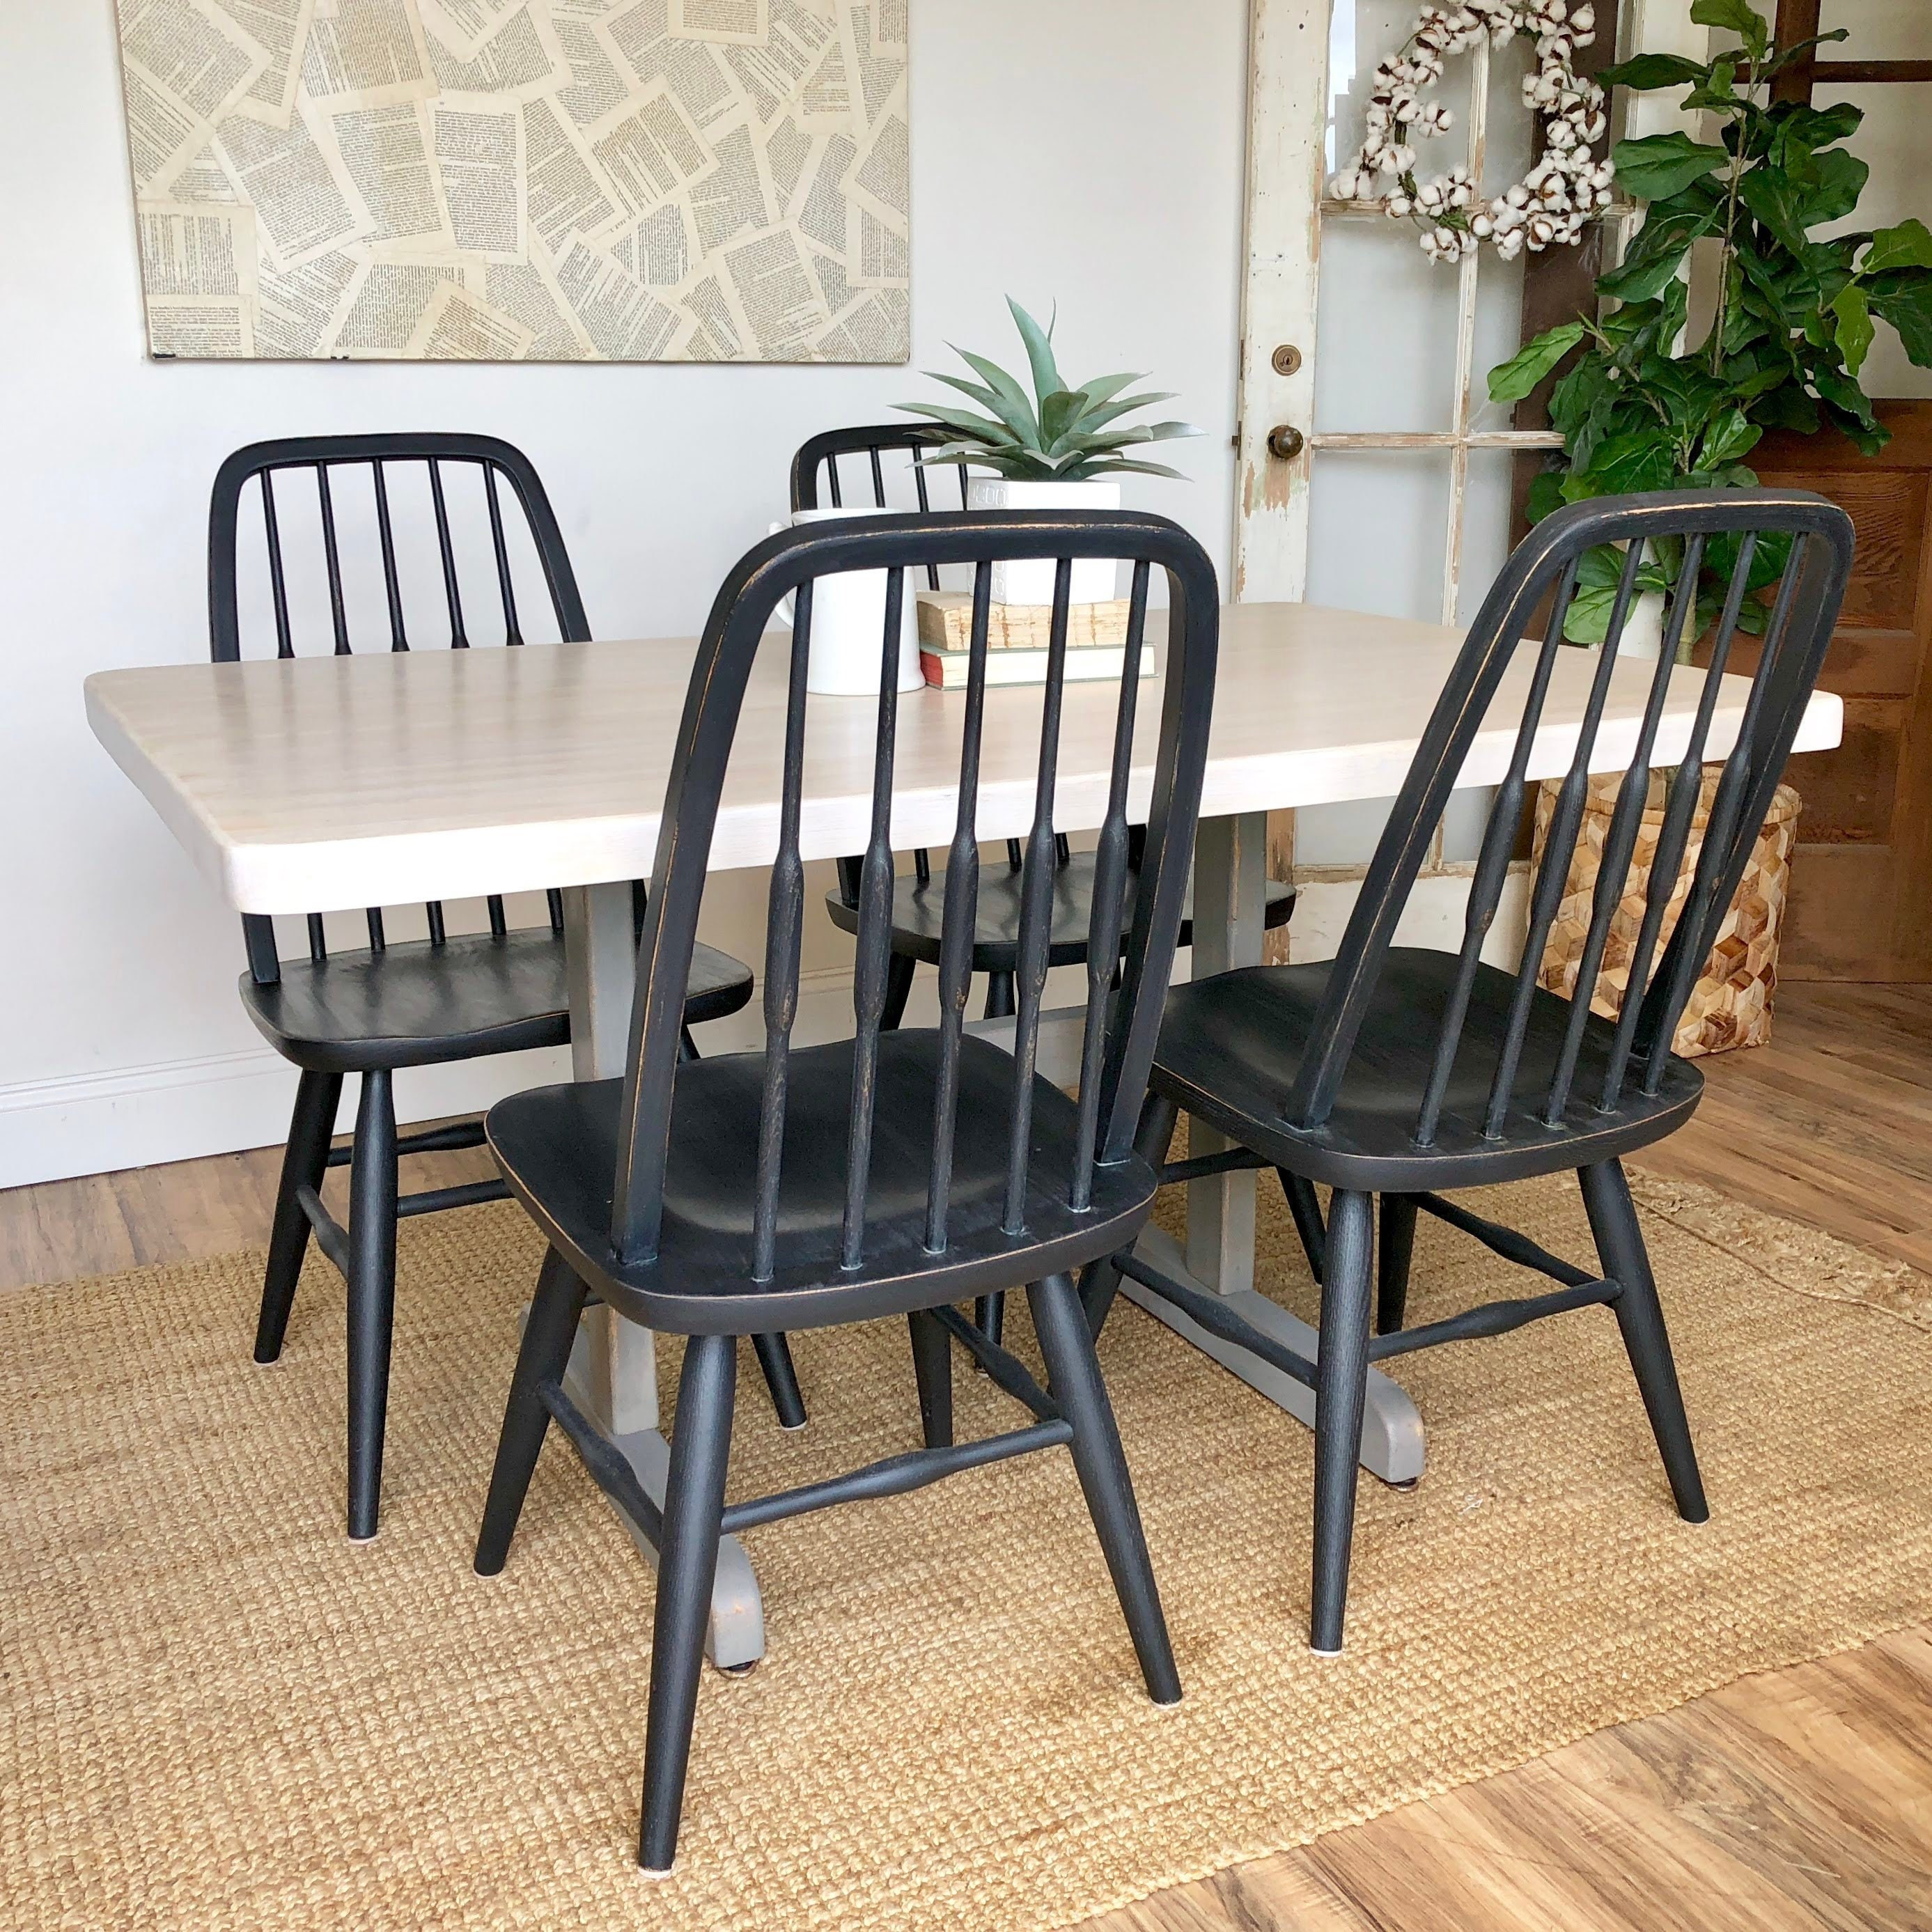 butcher block table and chairs country furniture trestle dining rh vintageroomdecor com butcher block table and chairs Butcher Block Kitchen Table and Chairs